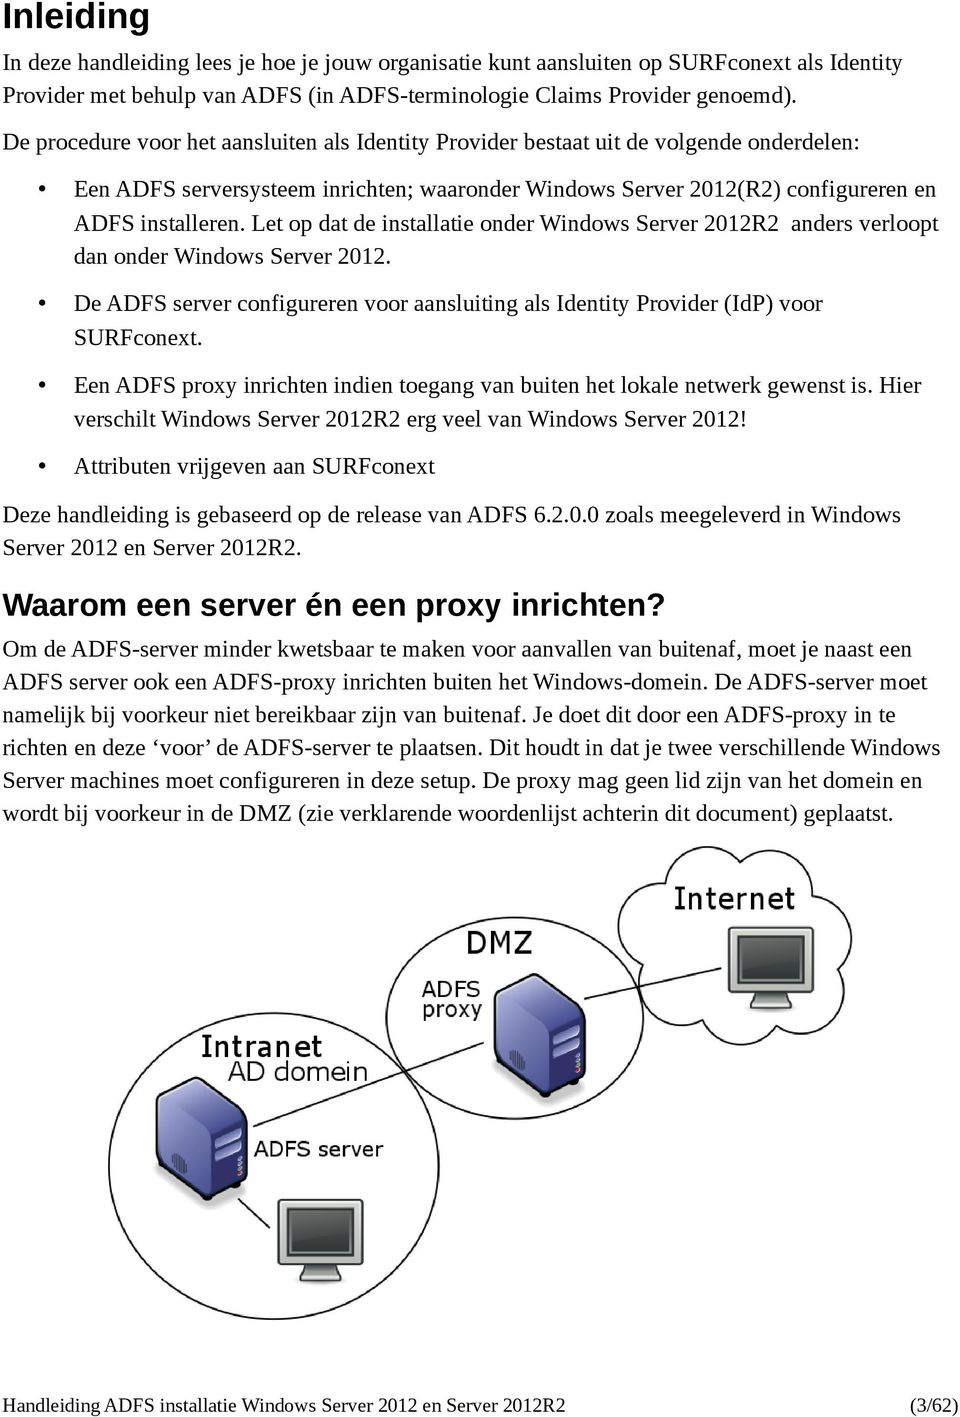 Let op dat de installatie onder Windows Server 2012R2 anders verloopt dan onder Windows Server 2012. De ADFS server configureren voor aansluiting als Identity Provider (IdP) voor SURFconext.